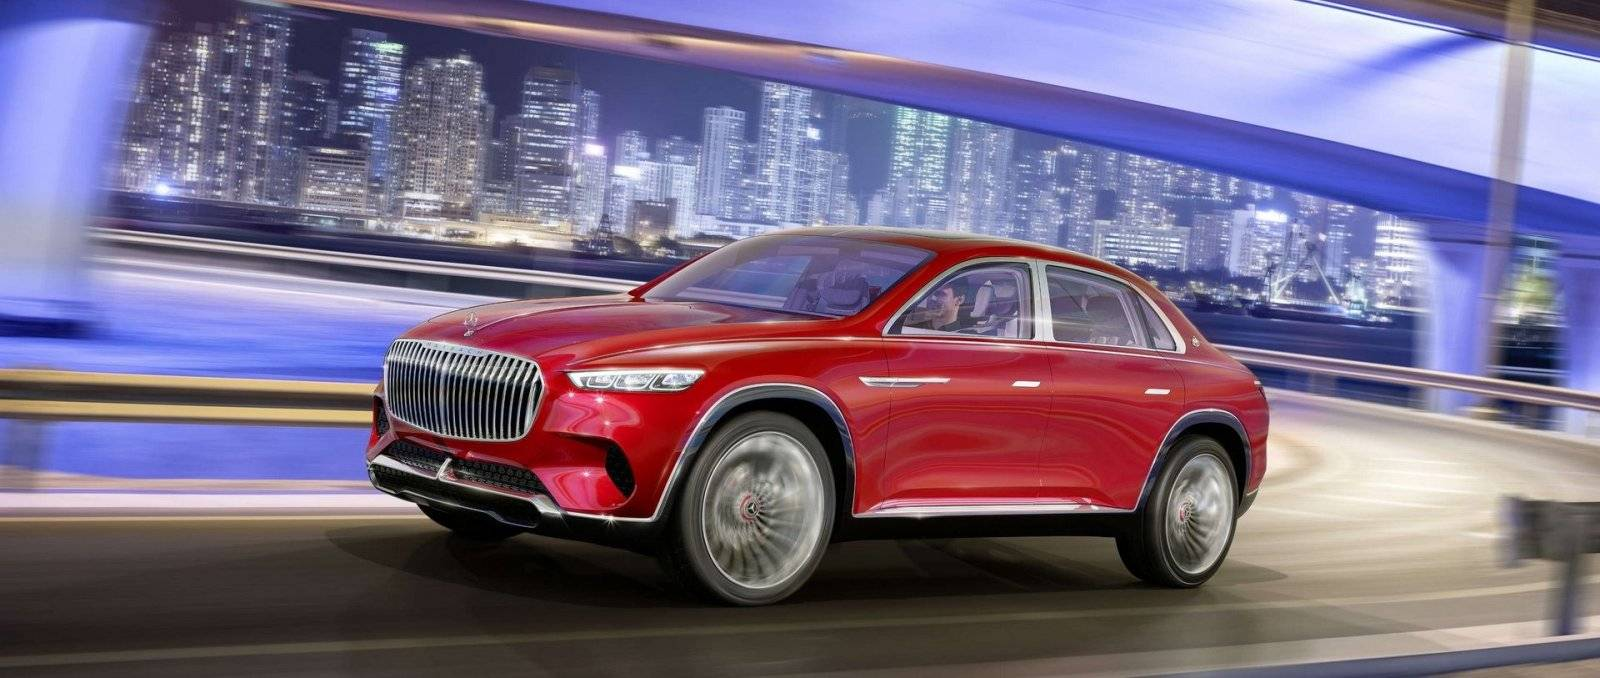 Mercedes Maybach Ultimate Luxury Concept Lekt Uit Autowereld Com